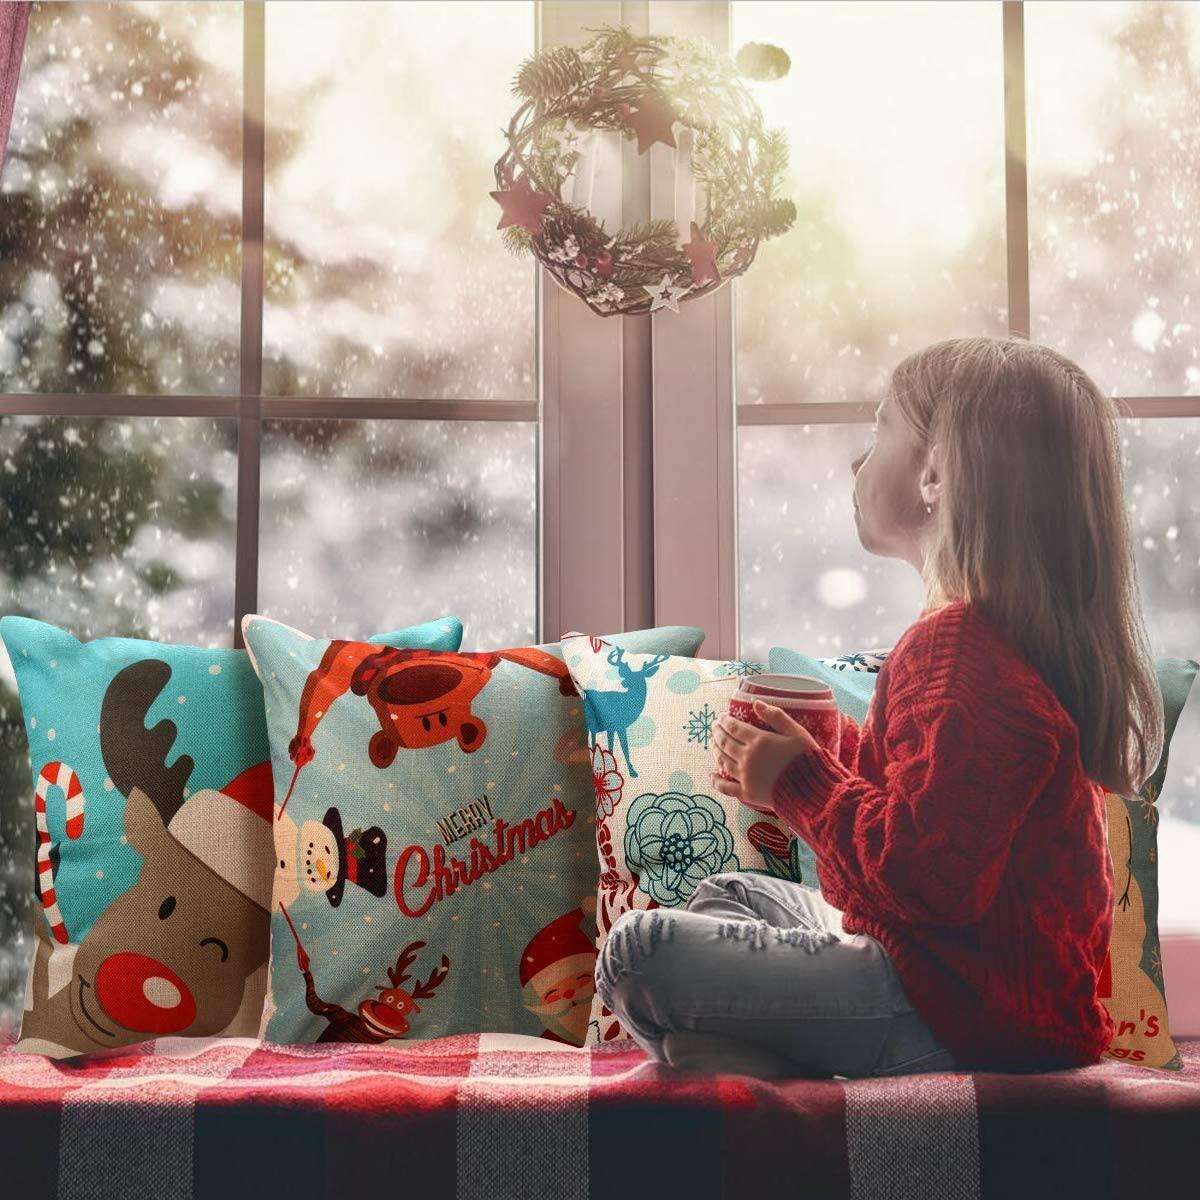 Merry Christmas Throw Pillow Covers 4 Pack Print Snowman,Xmas Deer,Santa Claus, Home Decorative Accent Pillow Cases 18x18 Inch, Cotton Linen - Sold by CHUDAO